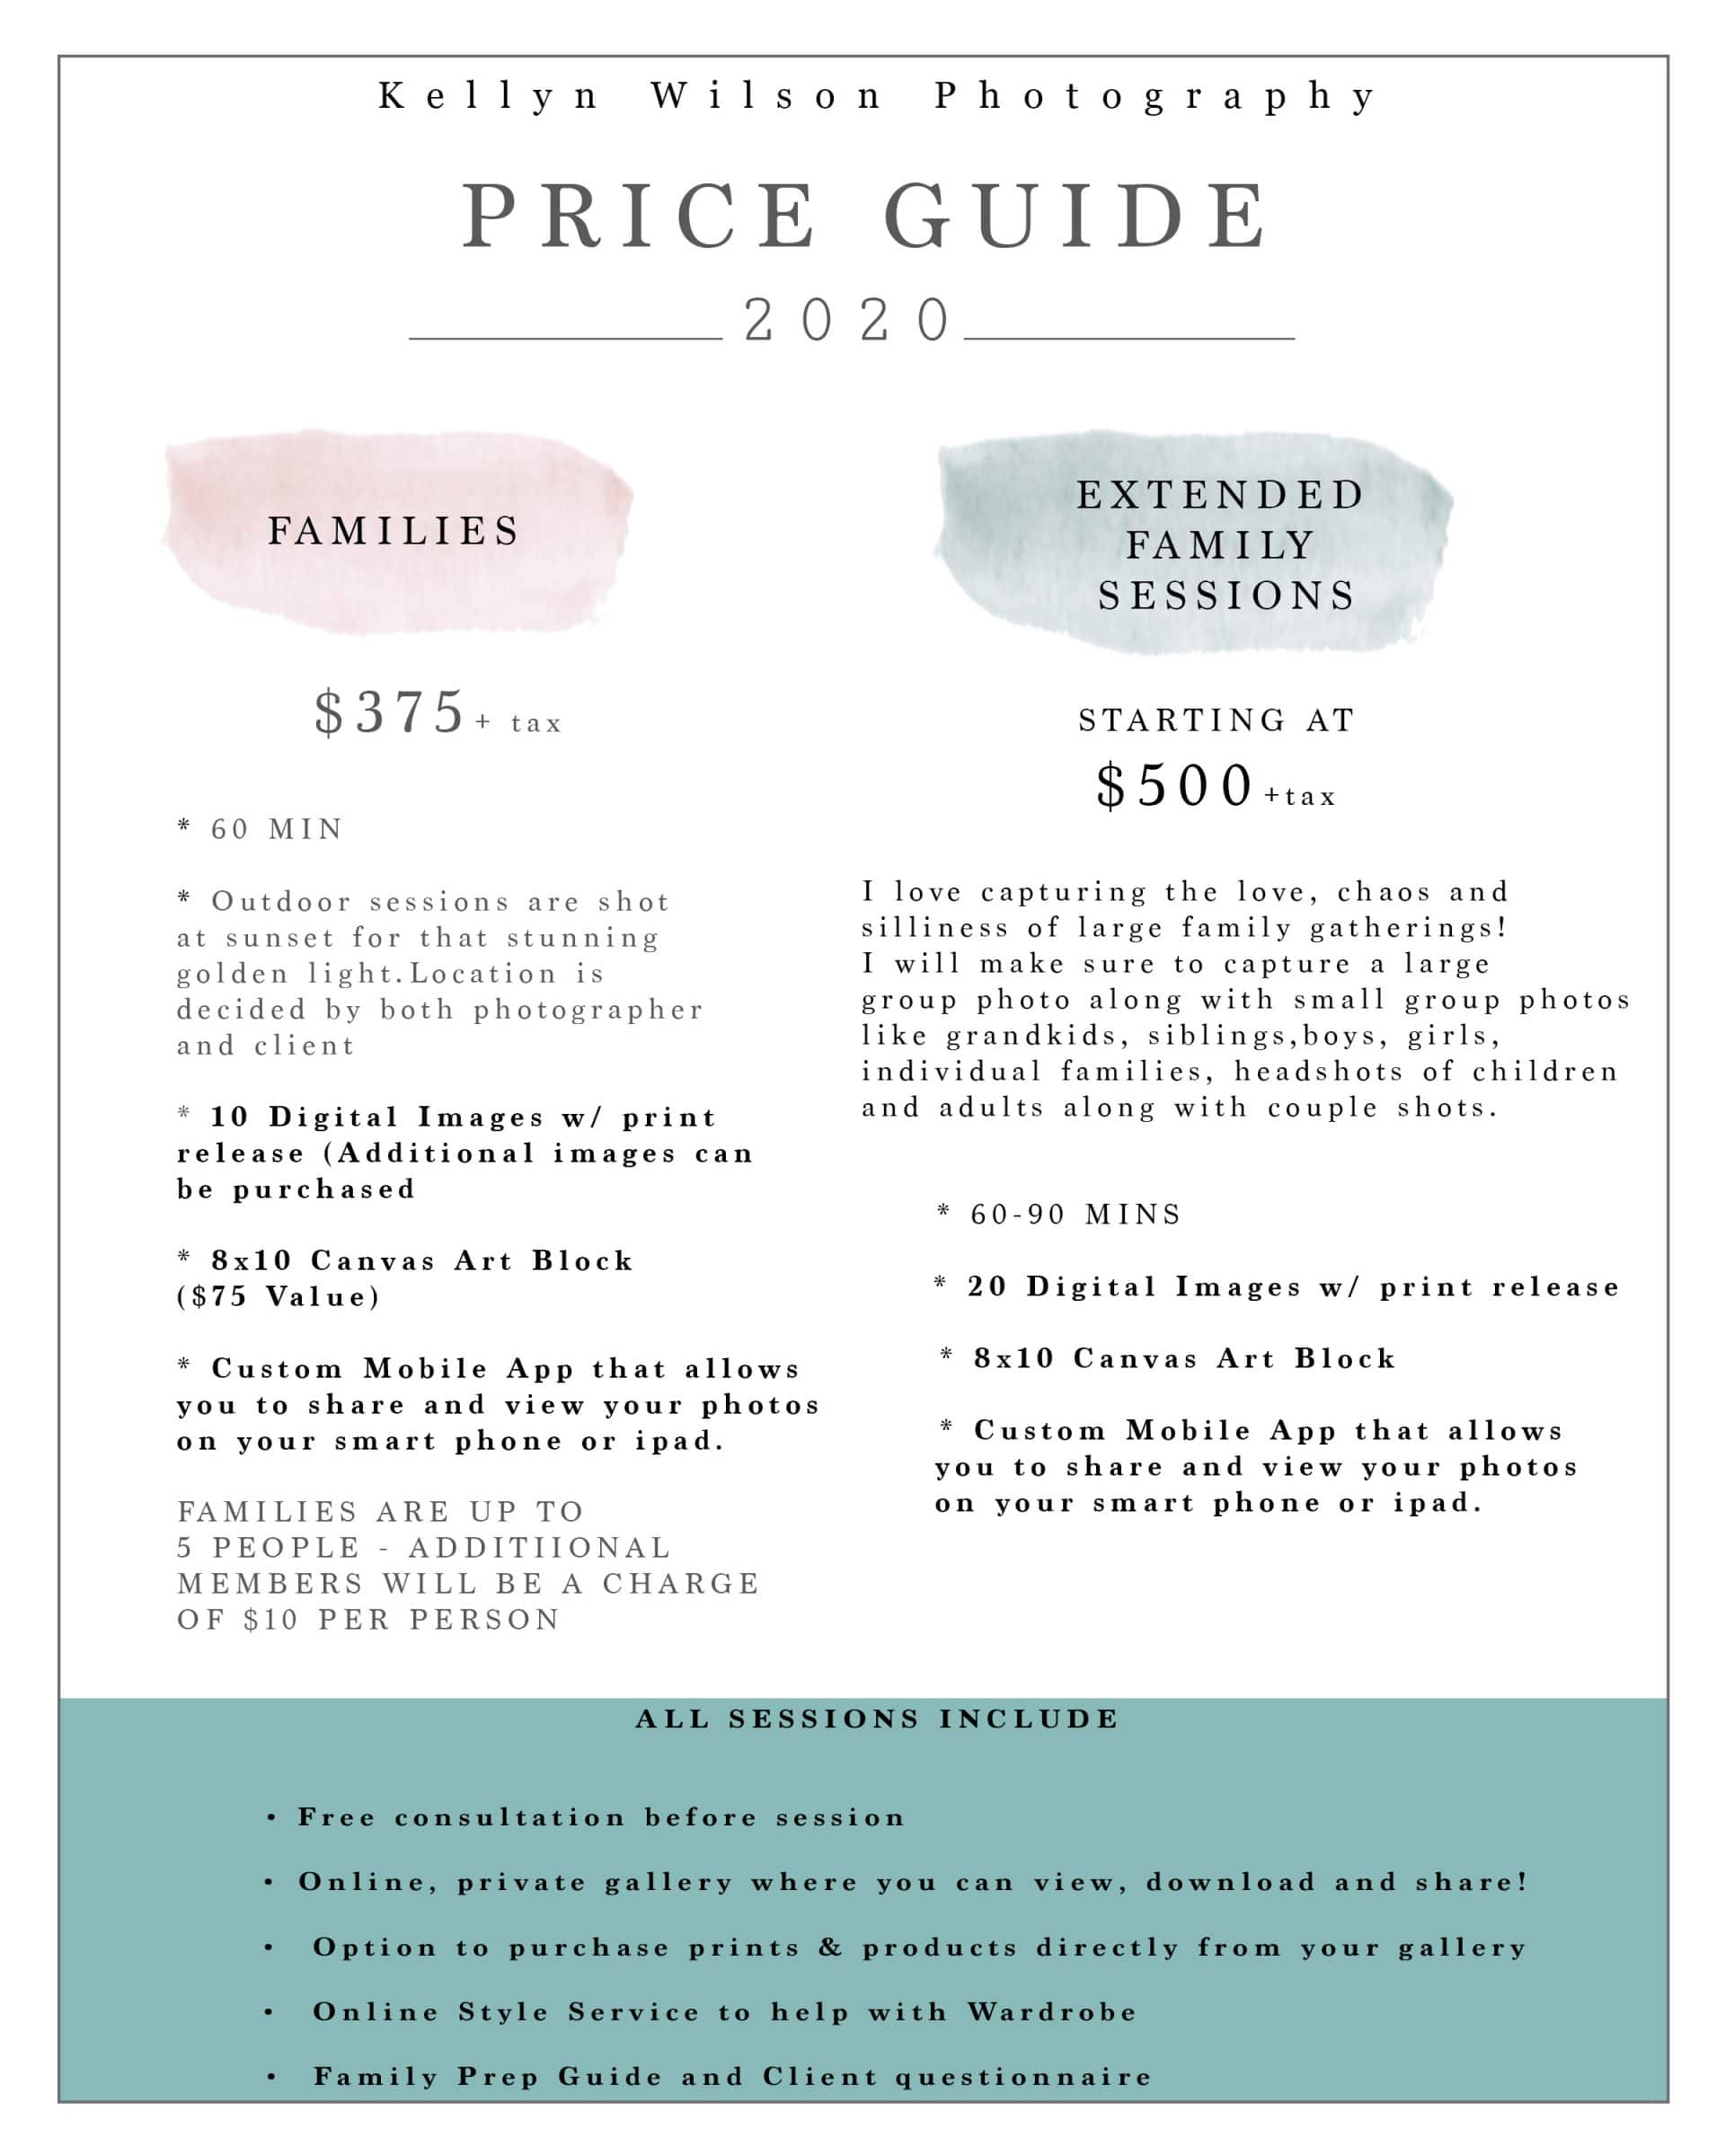 KELLYN WILSON PHOTOGRAPHY | FAMILY PRICING